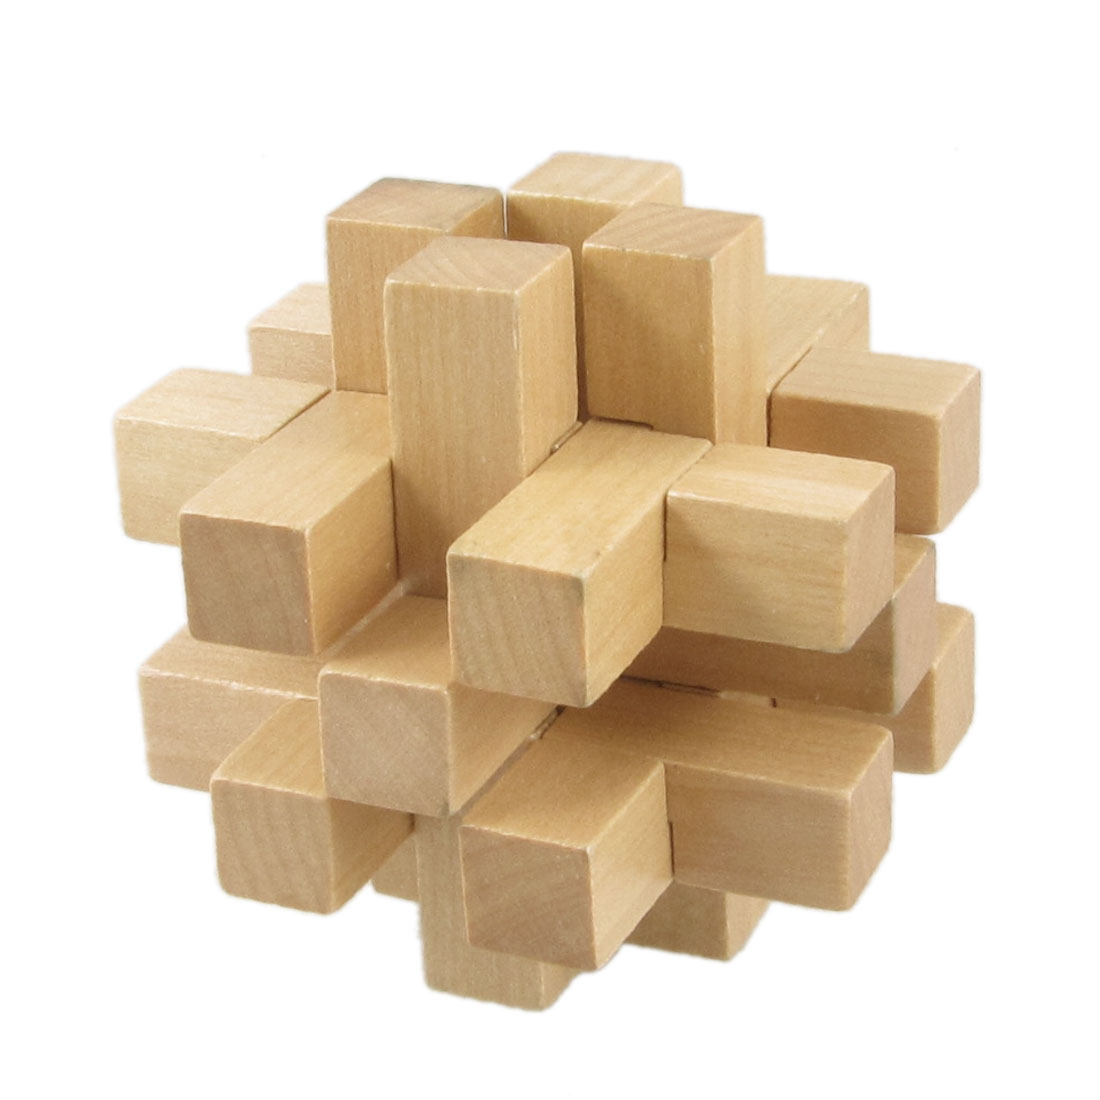 Kid Brain Train Wooden Intelligence Puzzle Toy Educational Assembly Gift